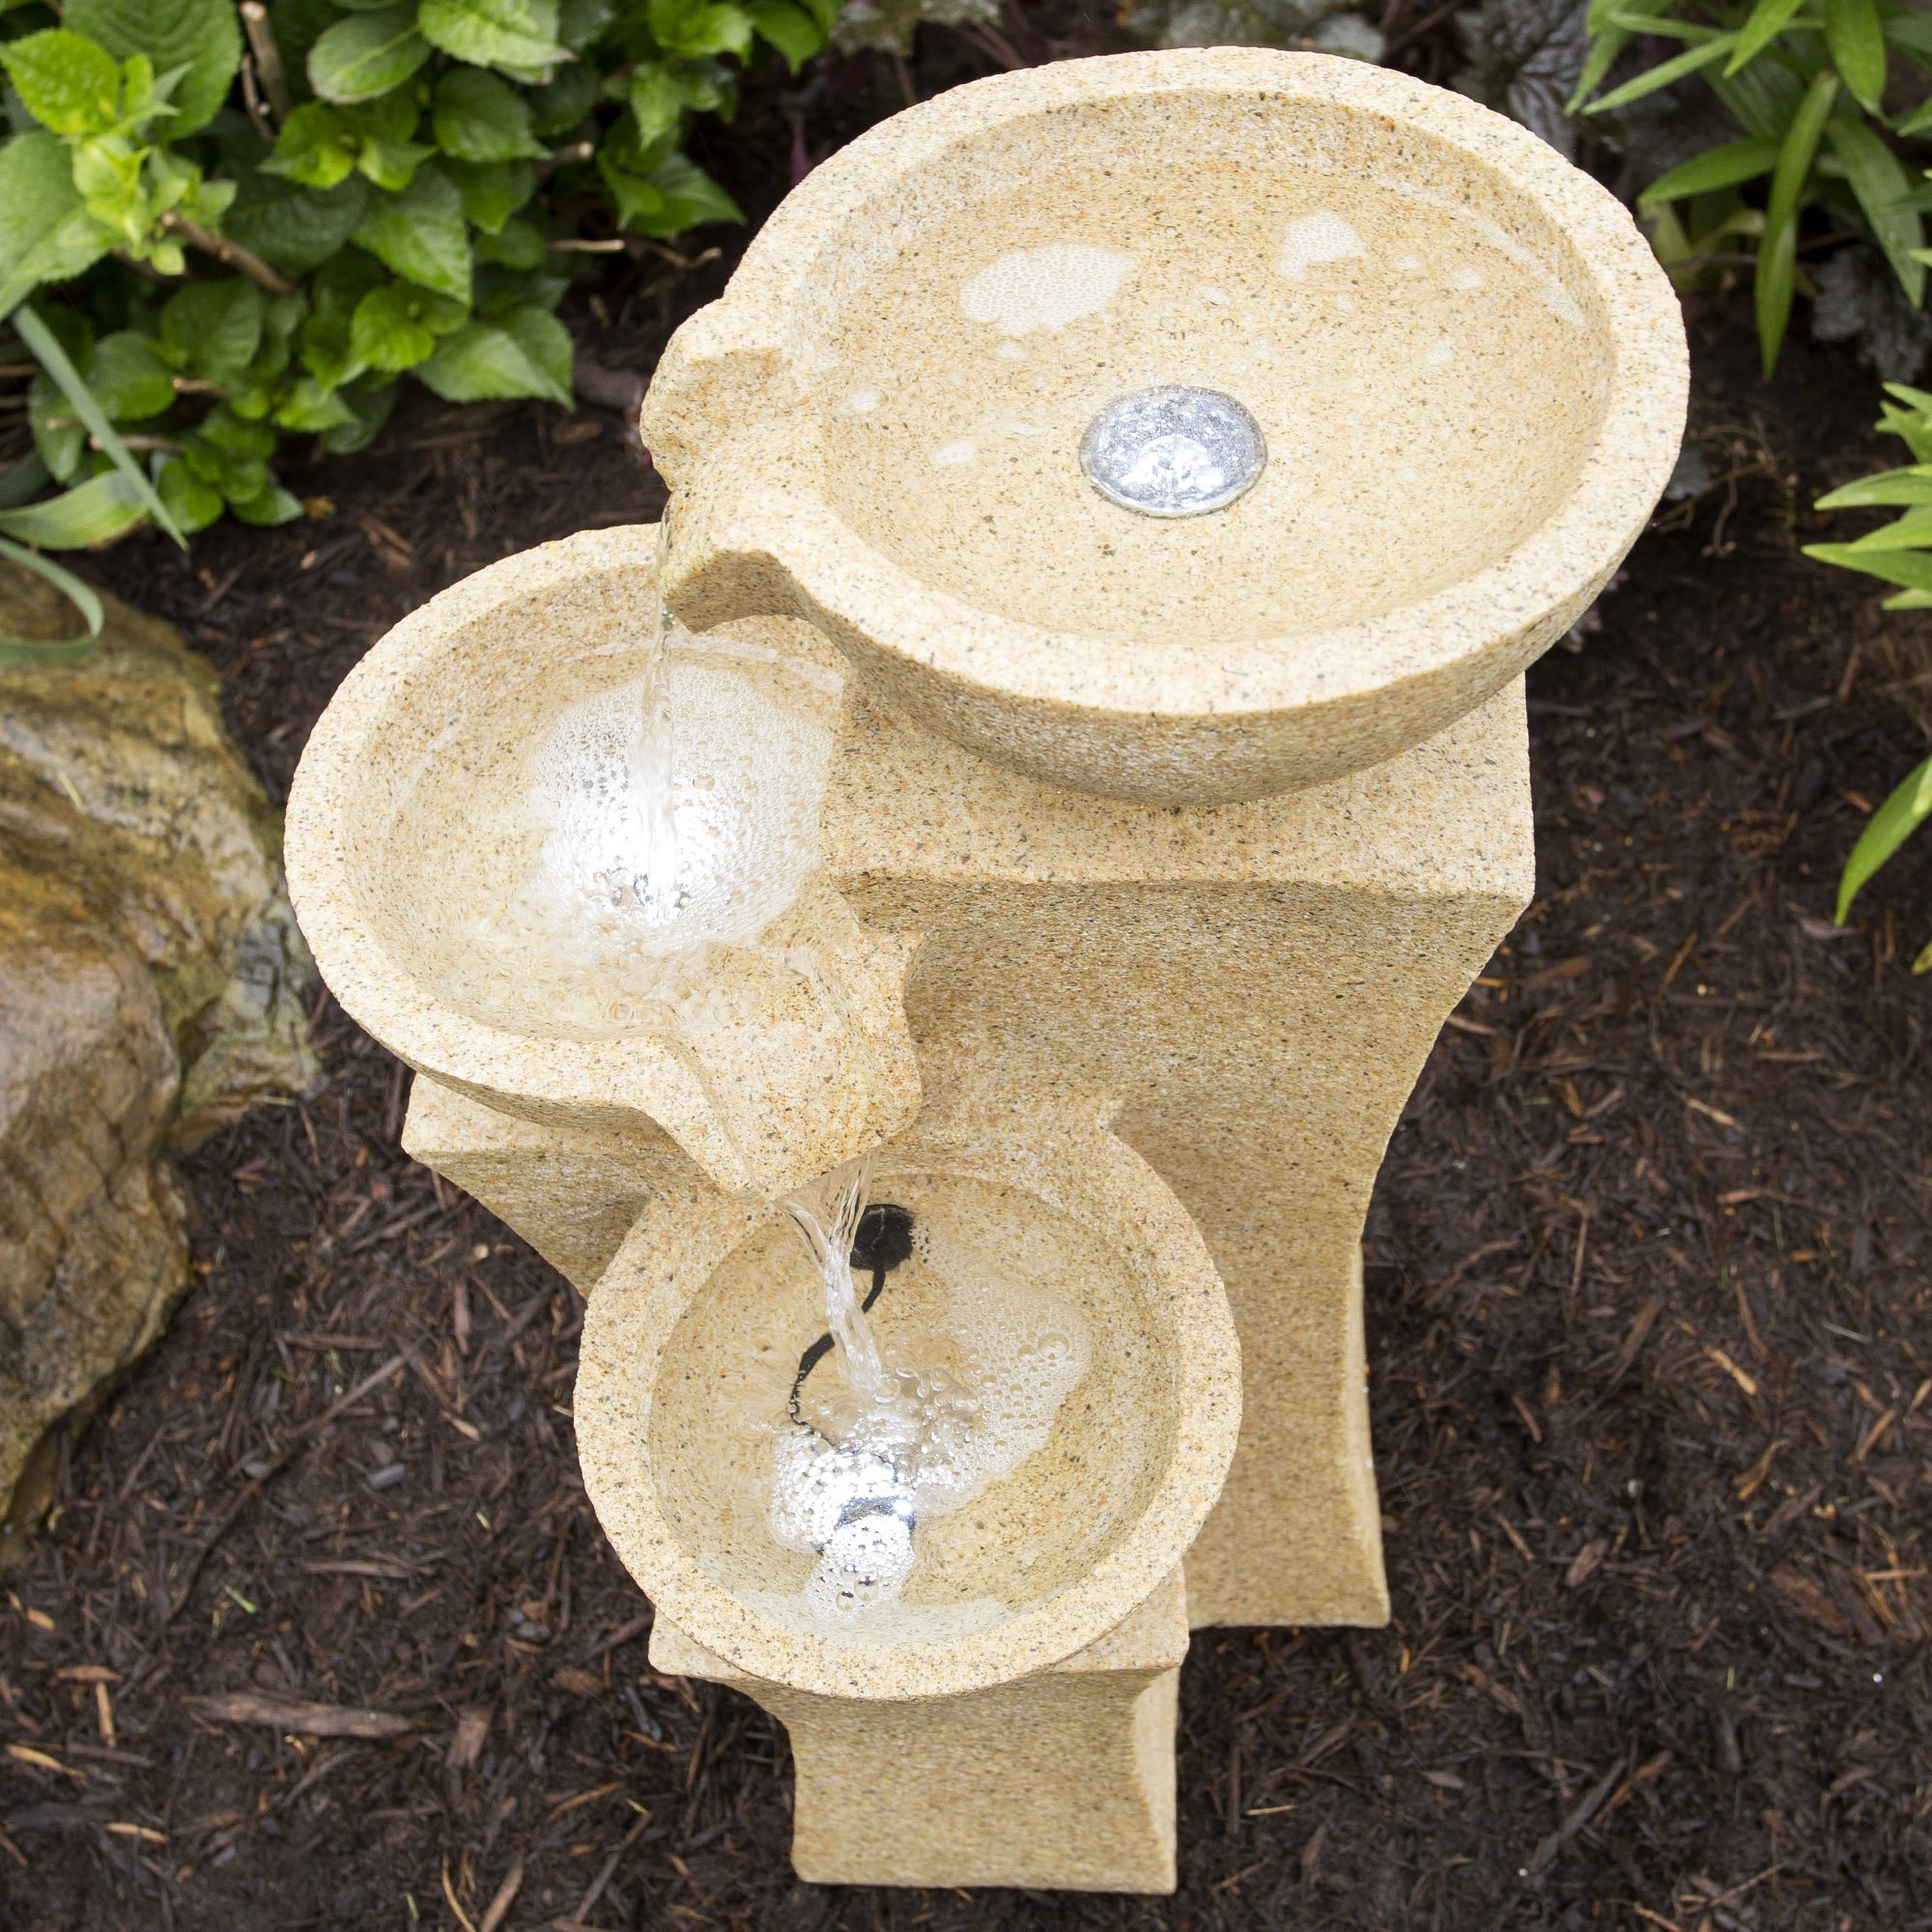 Outdoor Water Fountain With LED Lights- Lighted Pots Fountain with Cascading Bowls and Soothing Sound for Patio, Lawn and Garden Décor By Pure Garden by Pure Garden (Image #4)